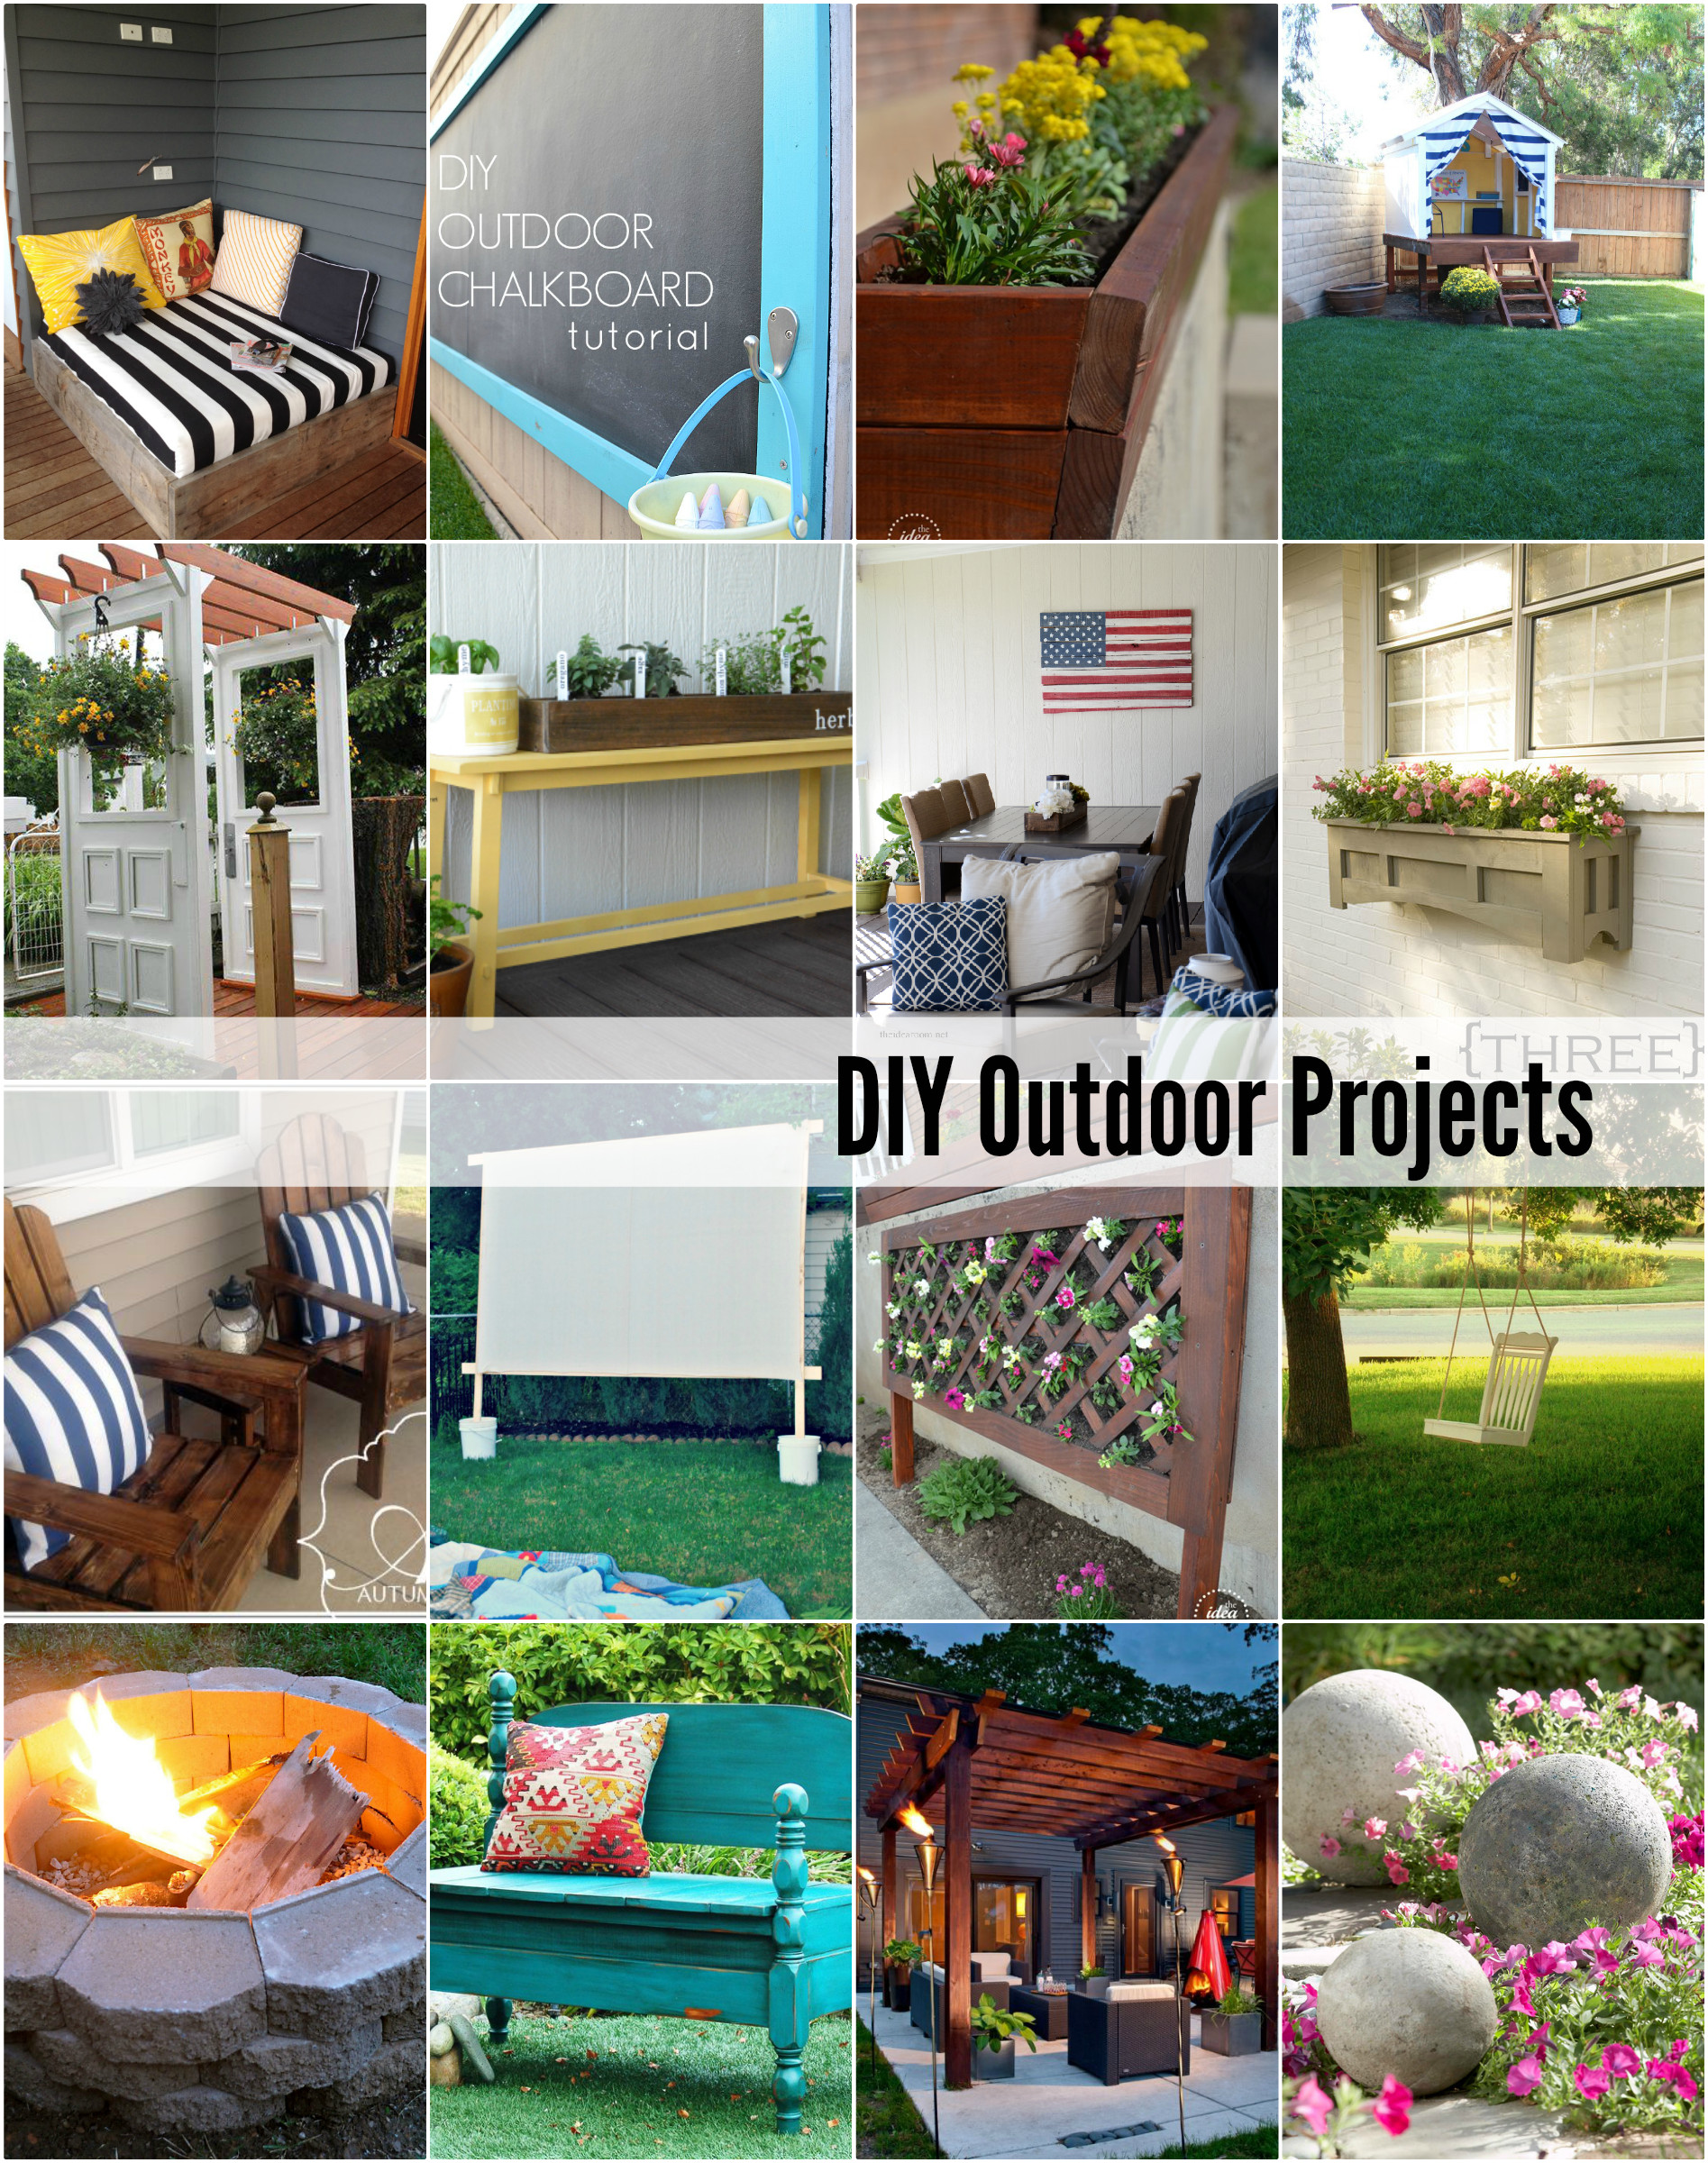 DIY Projects Outdoor  20 DIY Outdoor Projects The Idea Room